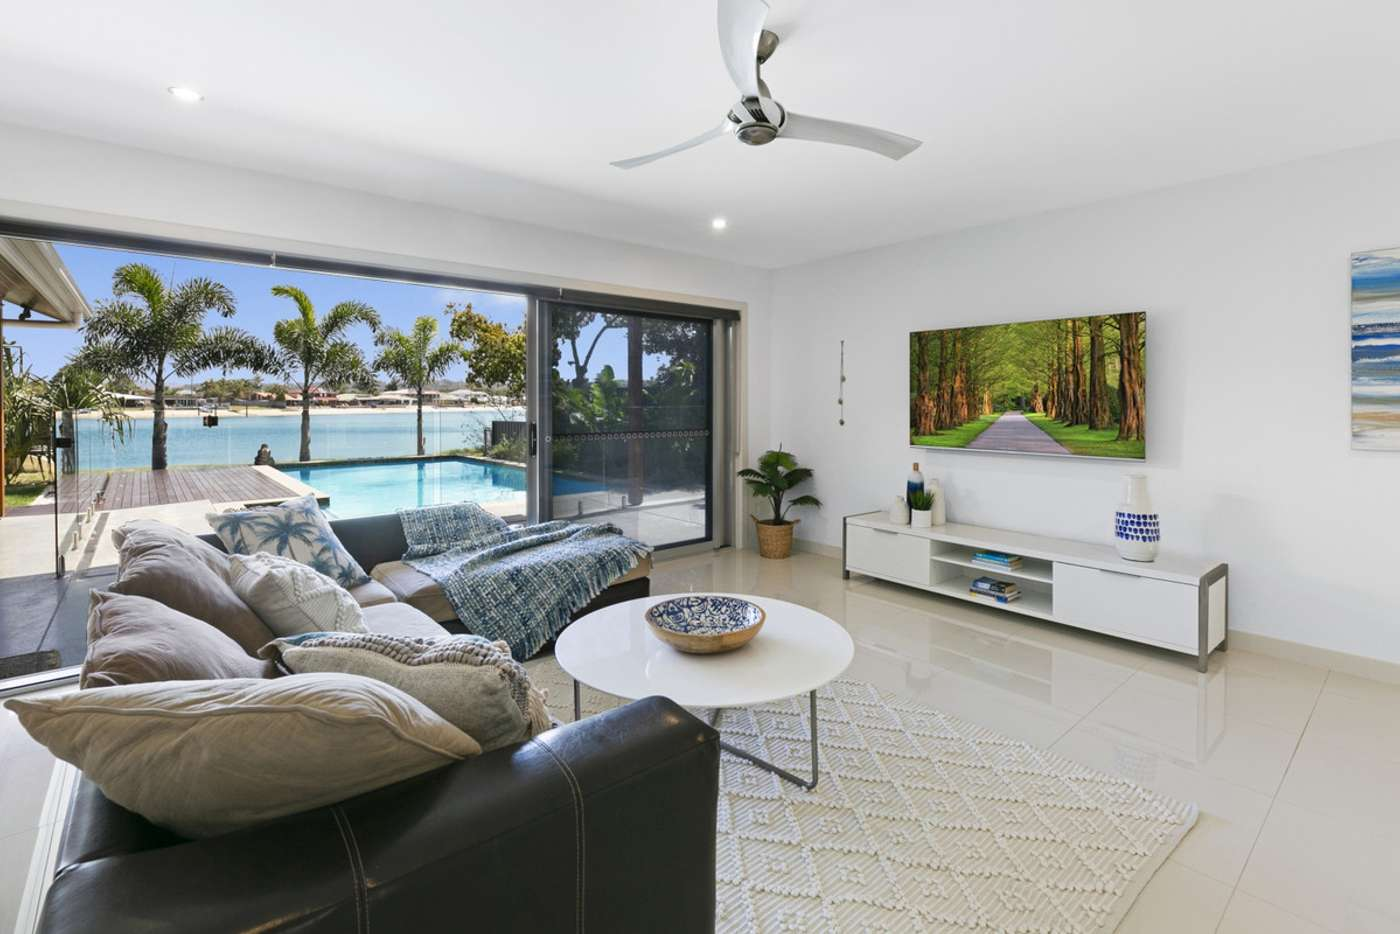 Fifth view of Homely house listing, 192 Tahiti Avenue, Palm Beach QLD 4221